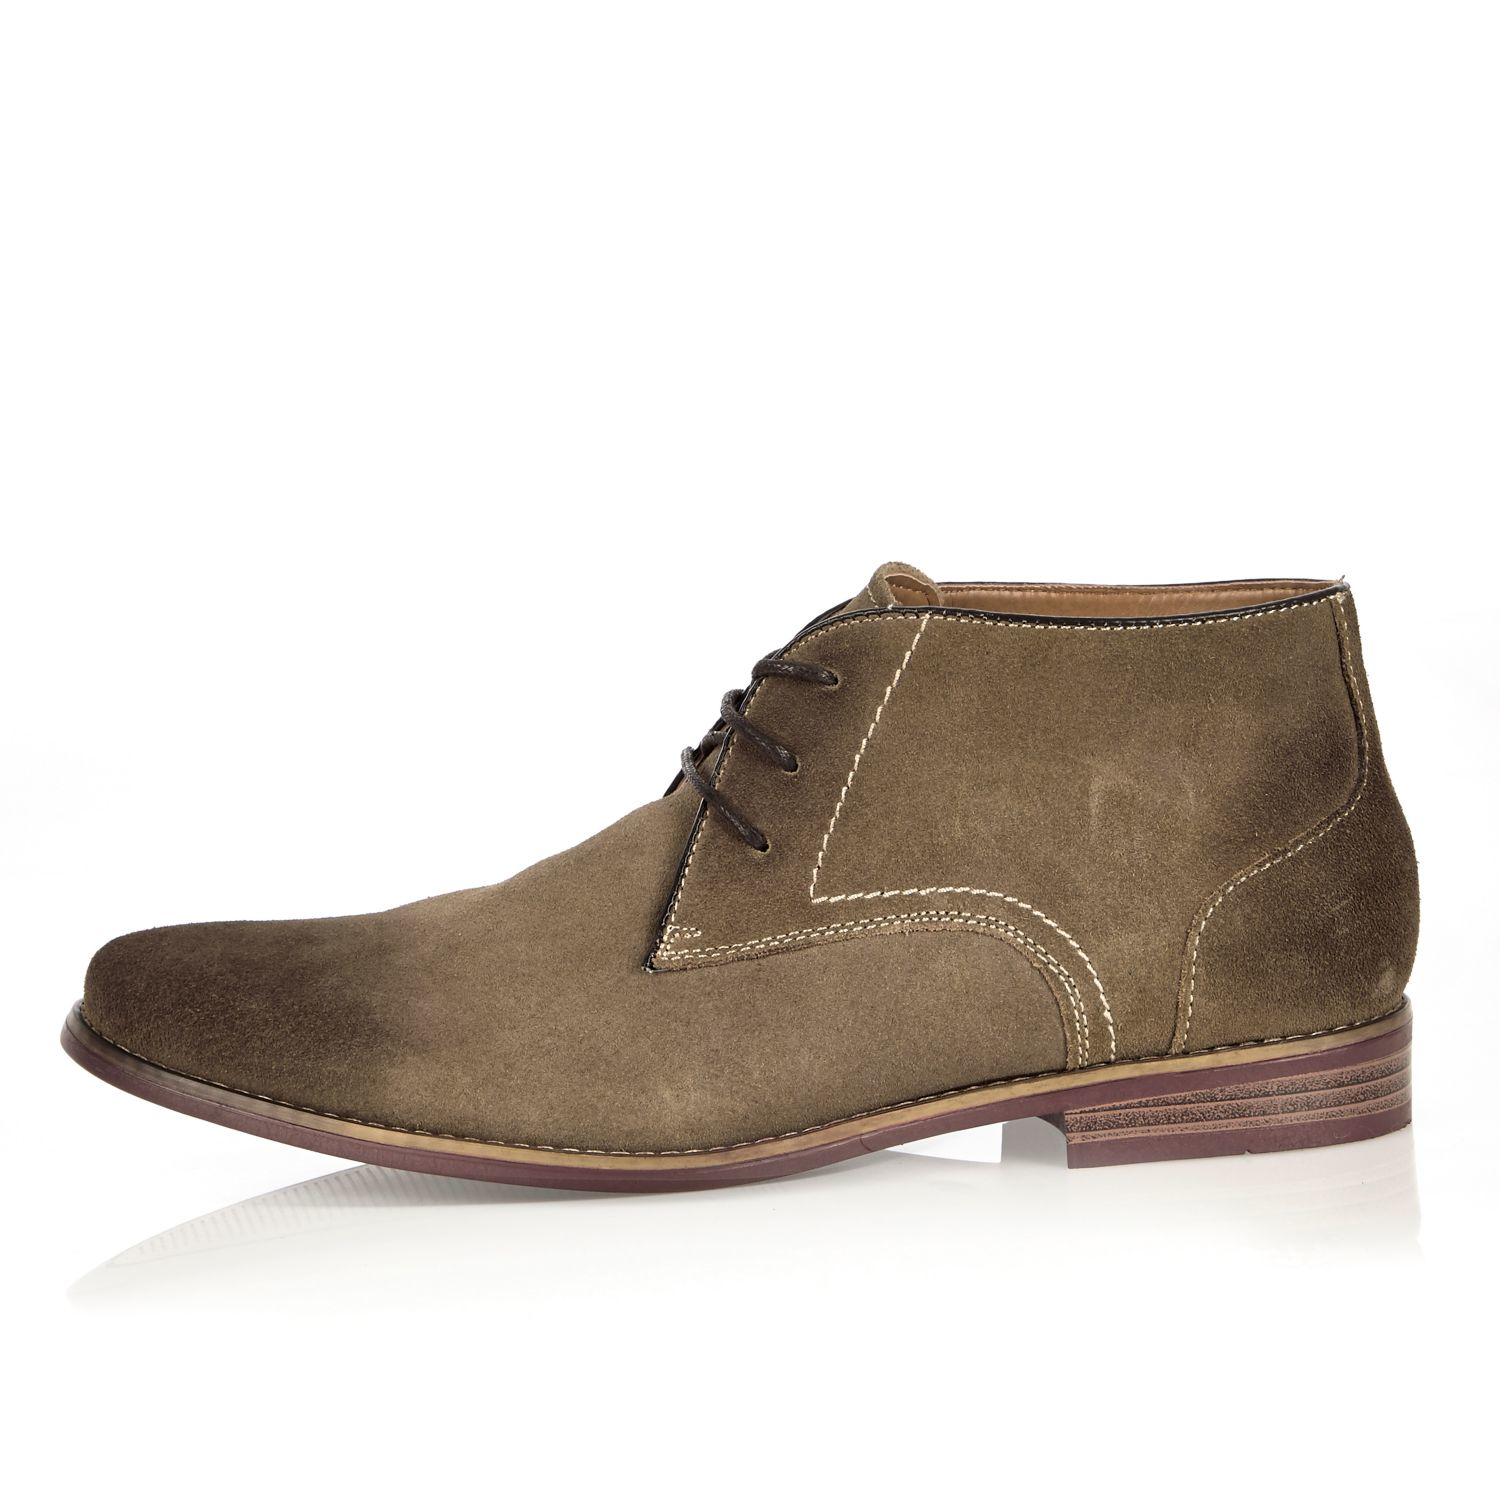 River Island - Multicolor Stone Suede Chukka Boots for Men - Lyst